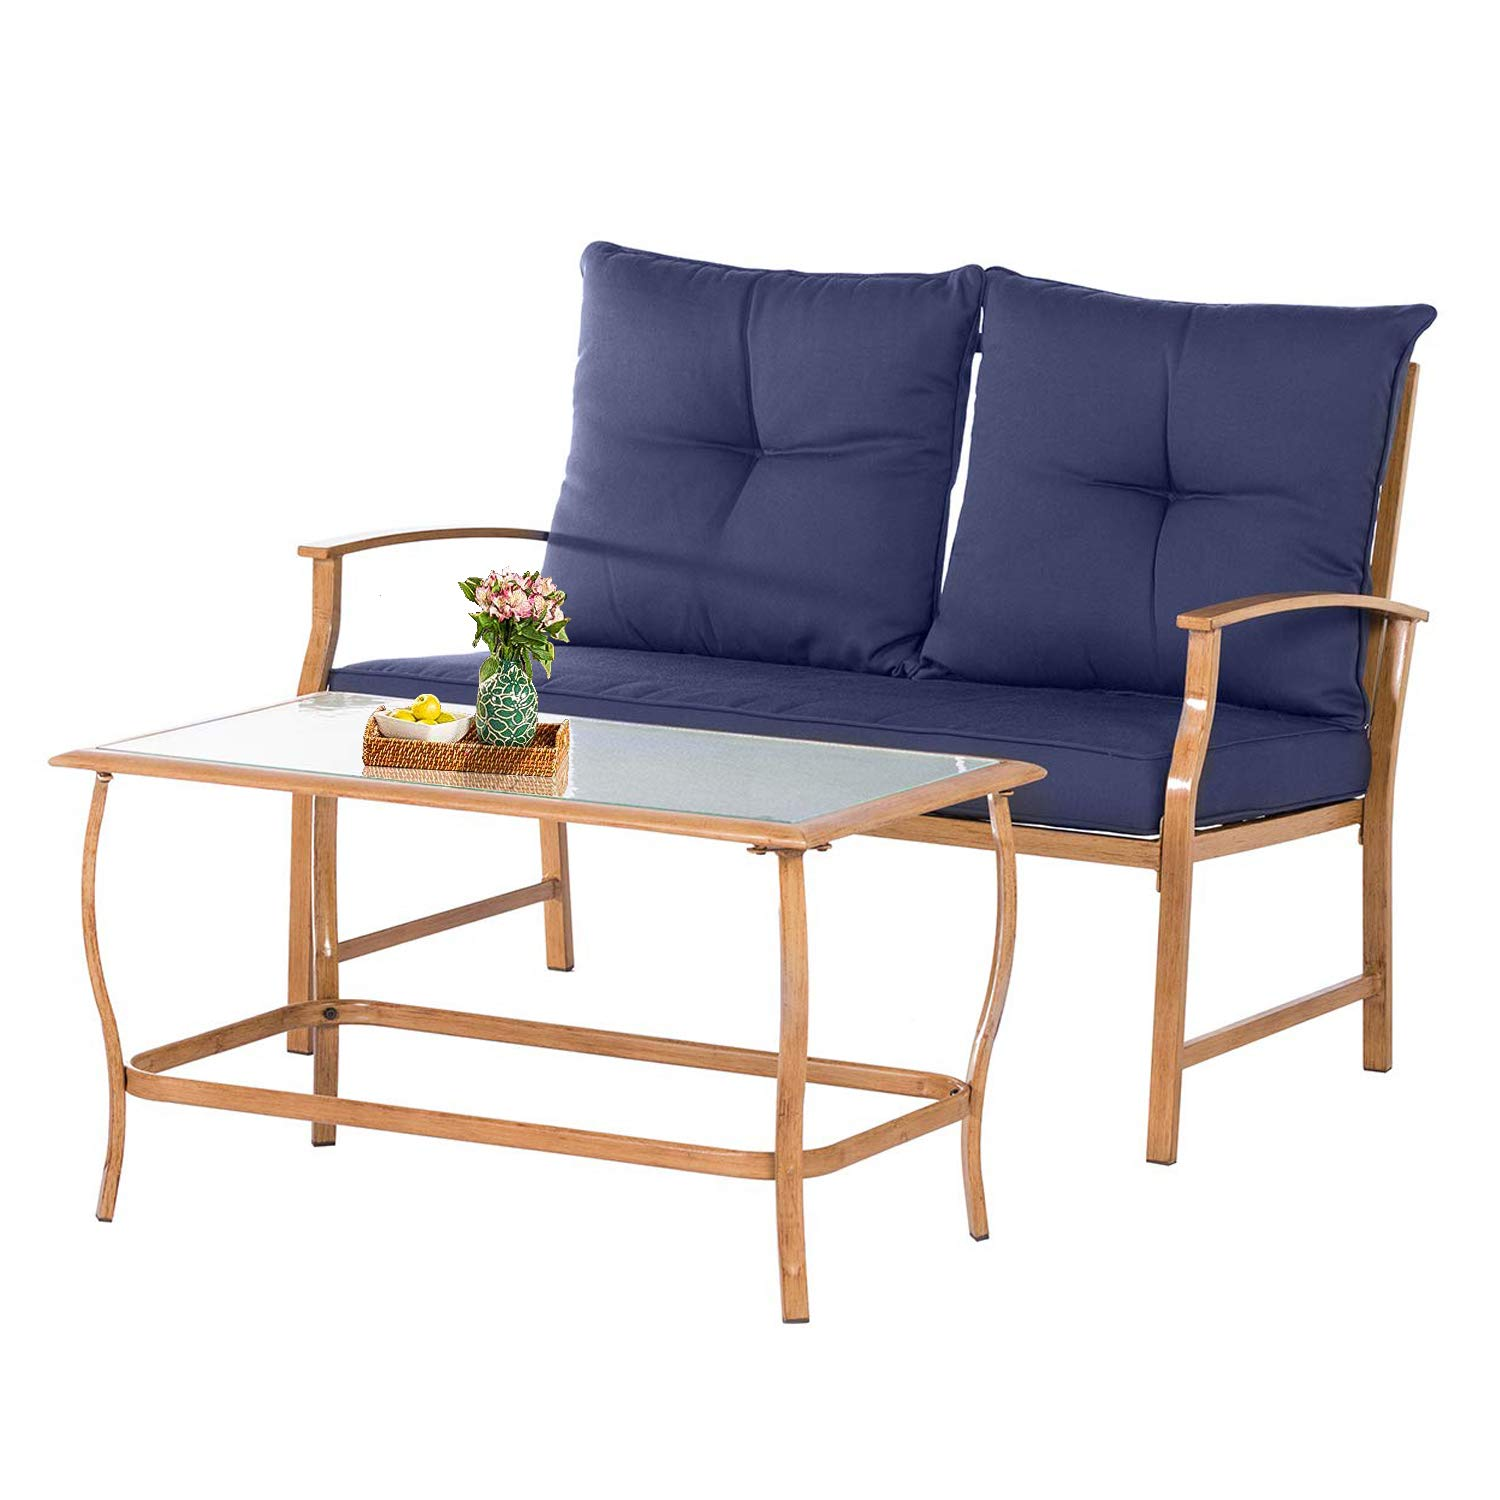 Incbruce Outdoor Loveseat Chair Patio Bench 2-Pieces , Garden Loveseat Seating Patio Wrought Metal Navy Blue Chair with Cushion